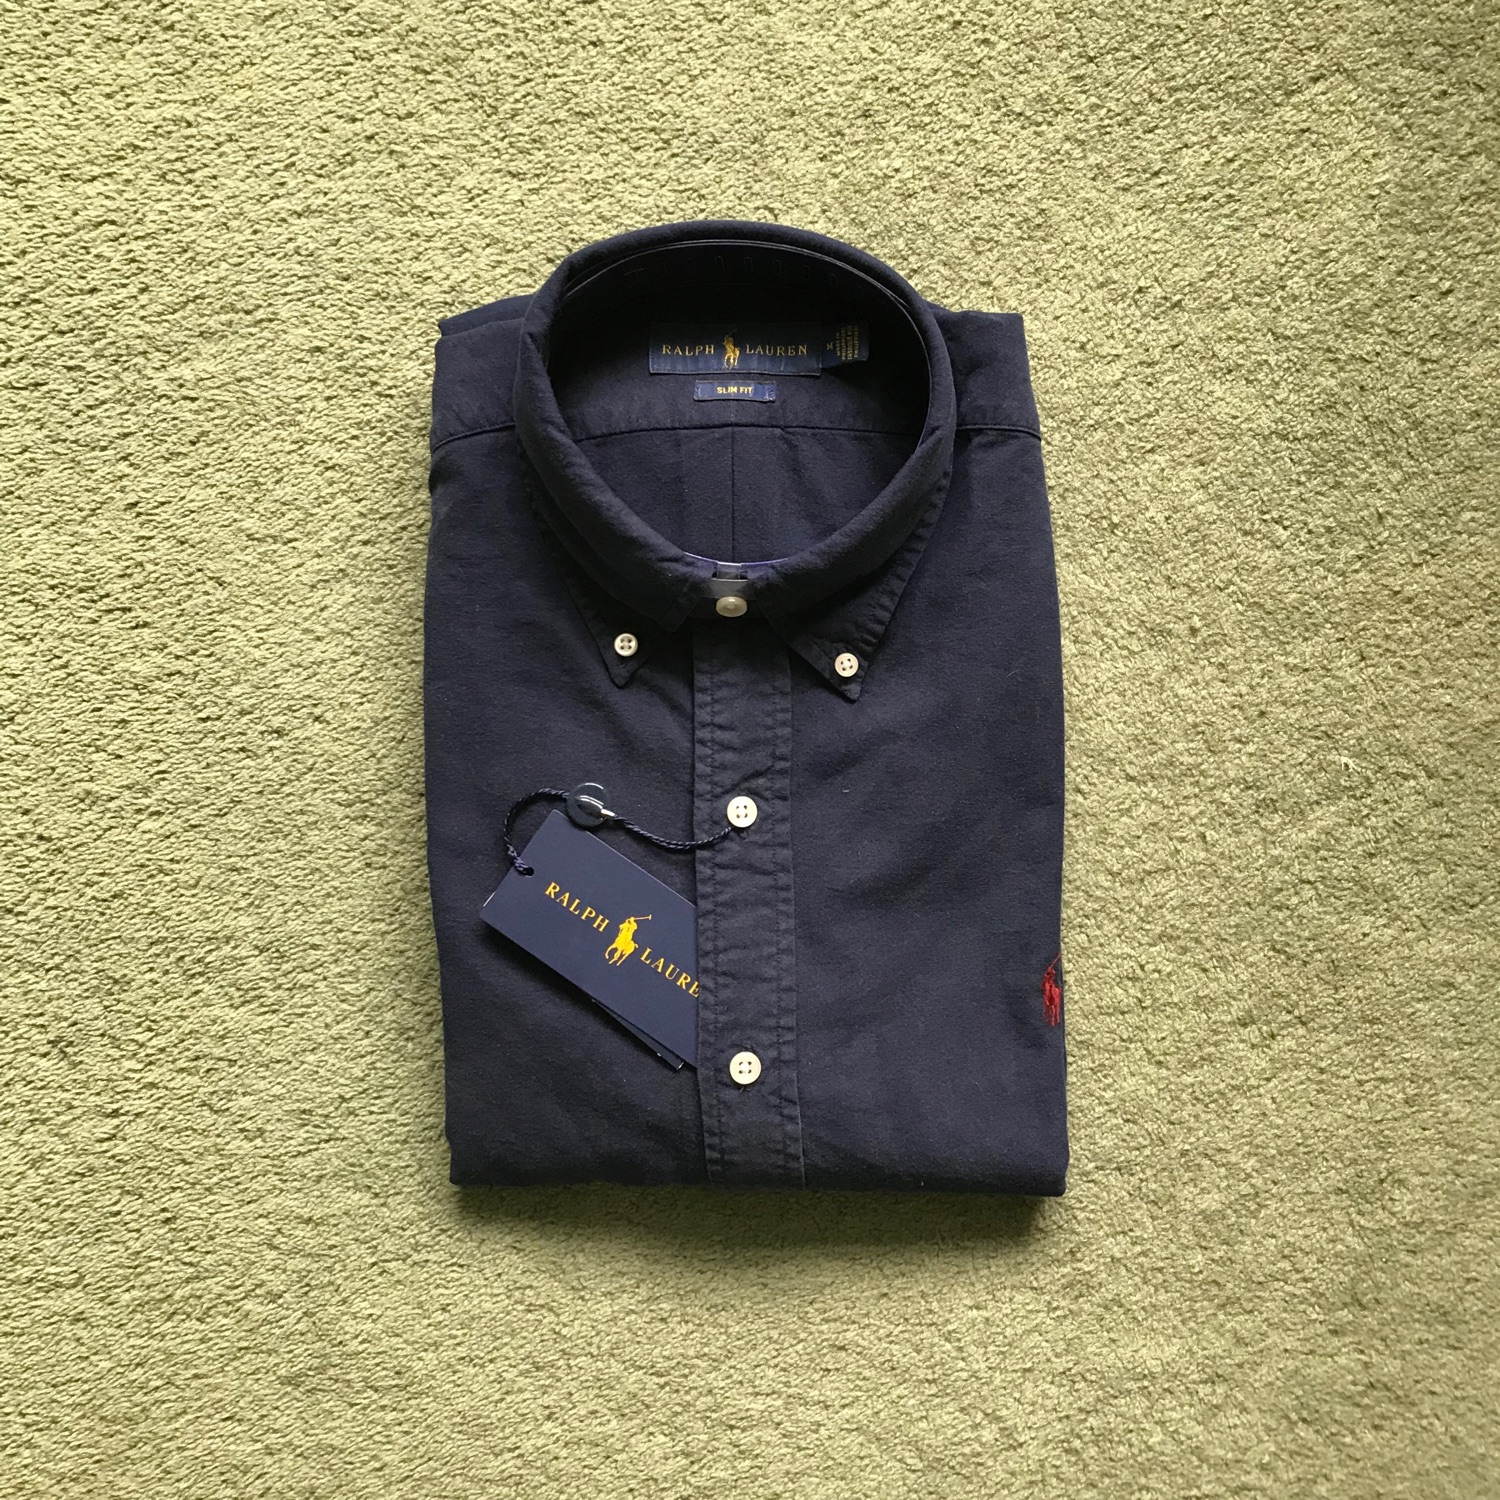 ced8a524889 Yellow Ralph Lauren Shirt Slim Fit - Nils Stucki Kieferorthopäde